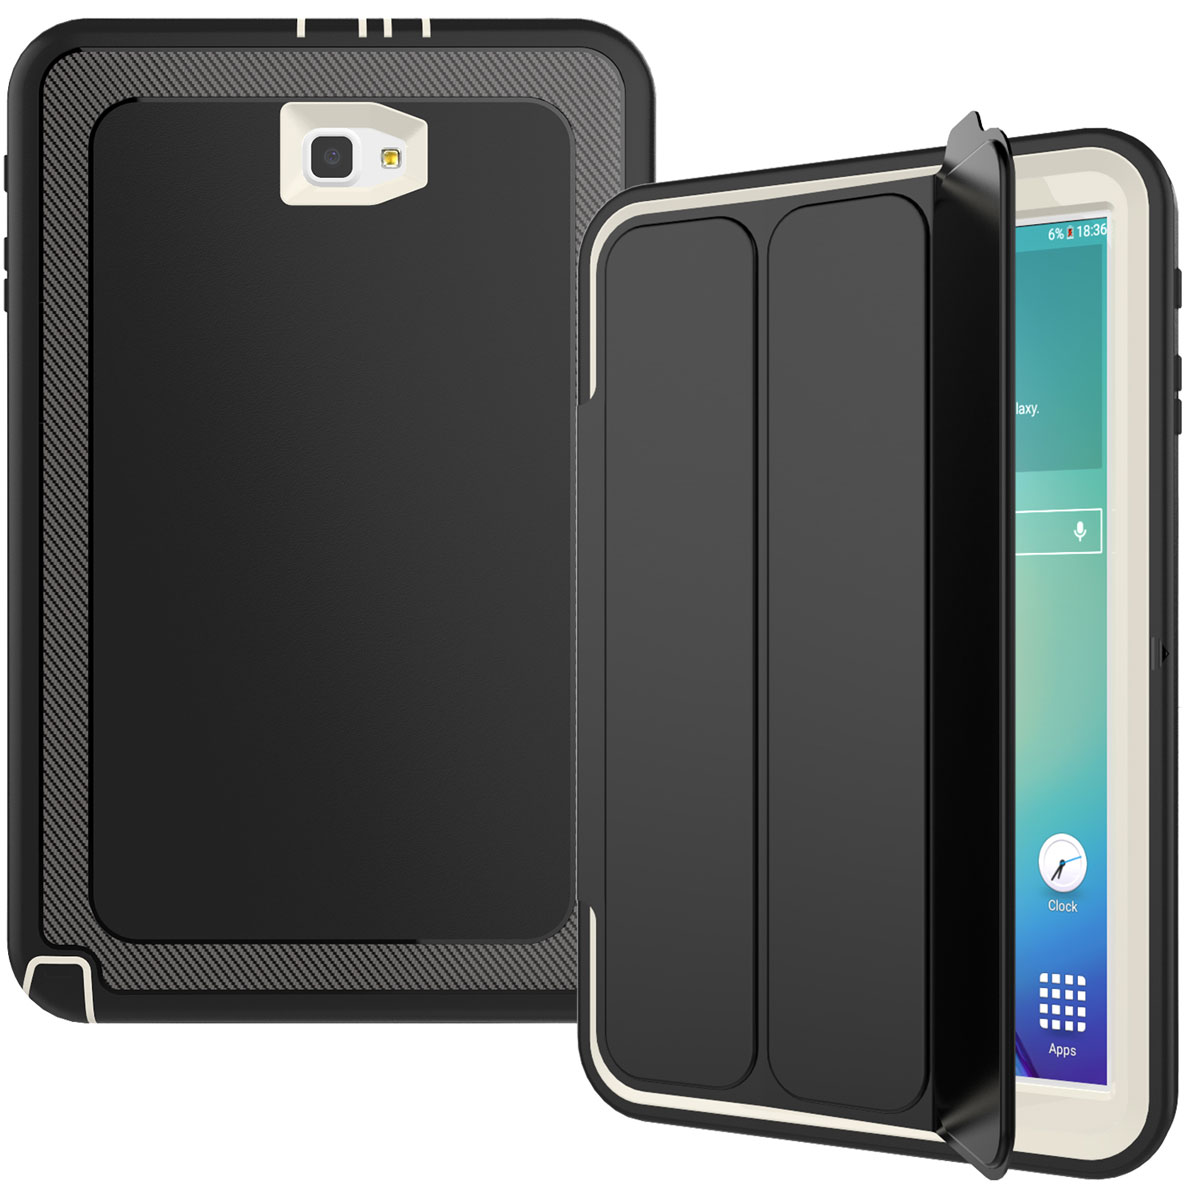 smart shockproof stand hard case screen protector for. Black Bedroom Furniture Sets. Home Design Ideas